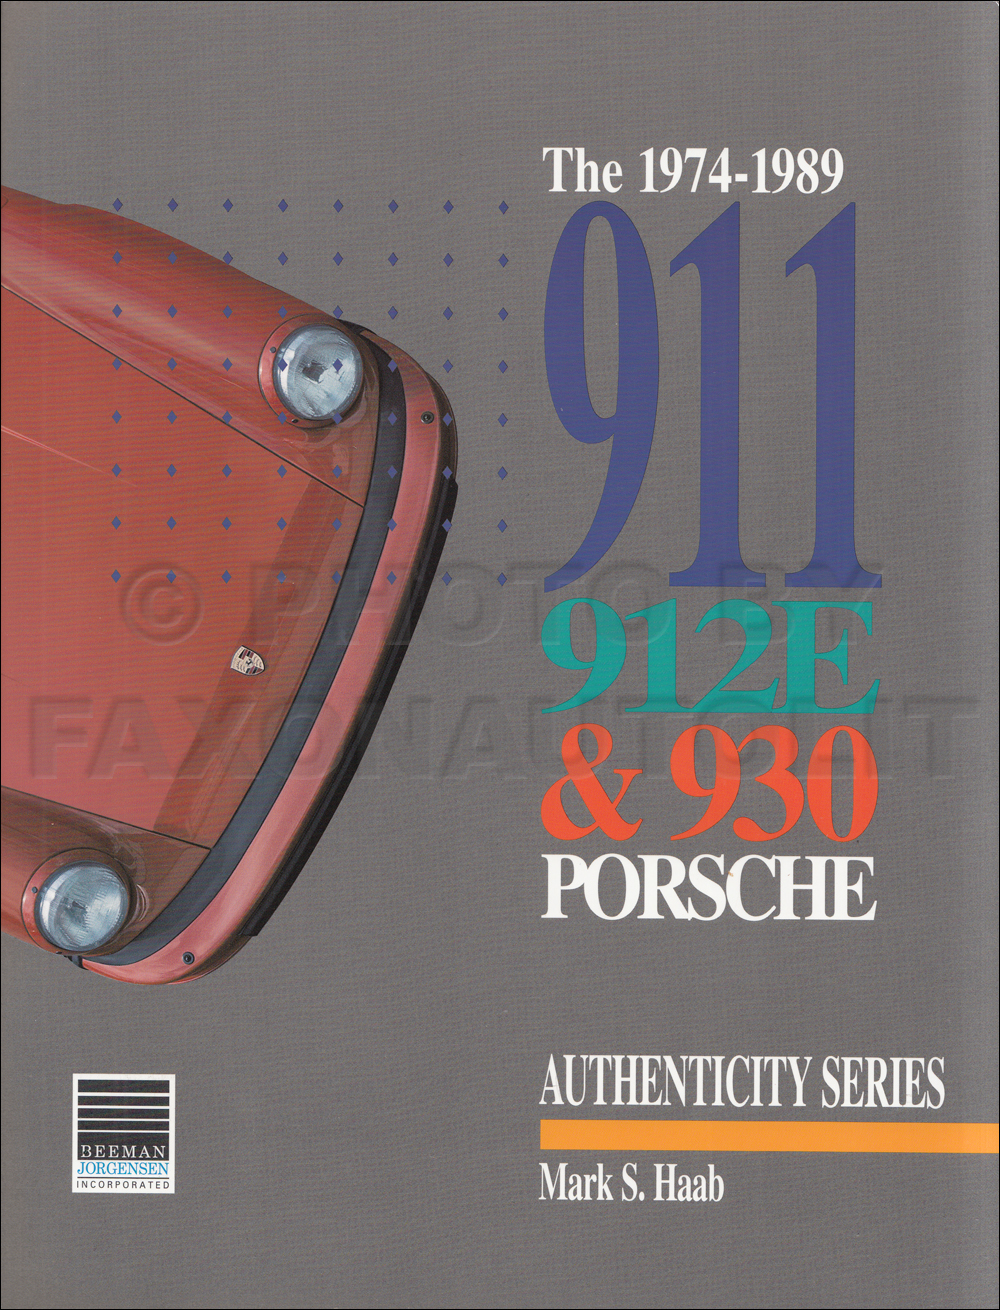 1974-1989 911 912E & 930 Porsche: Authenticity Series